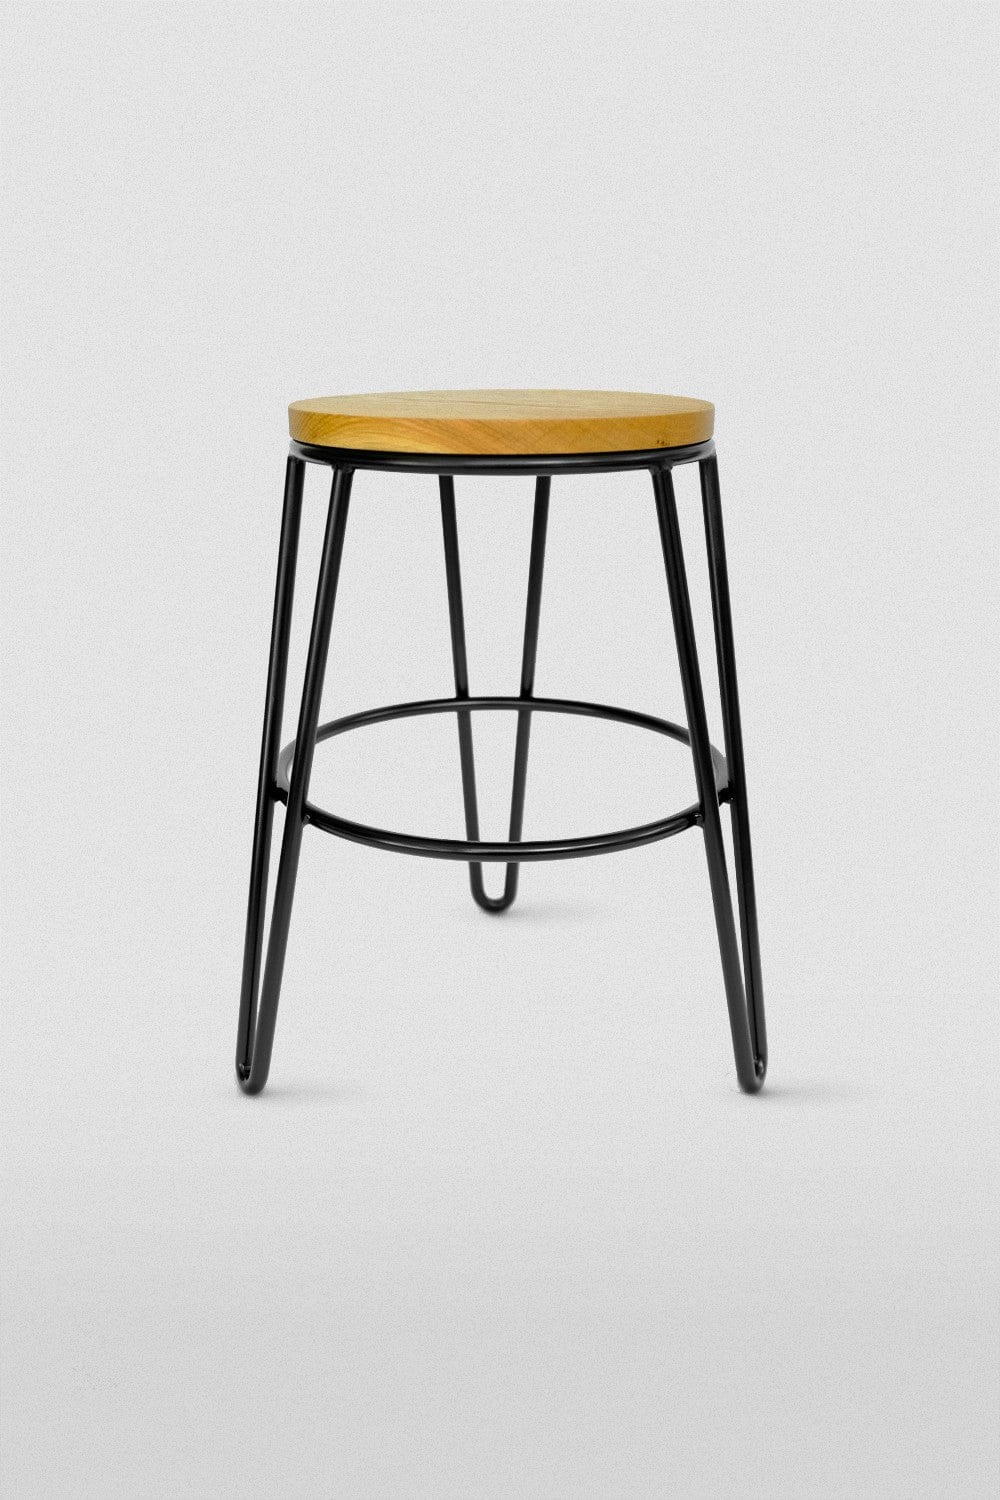 Hairpin Leg Stool Hairpinlegs Com